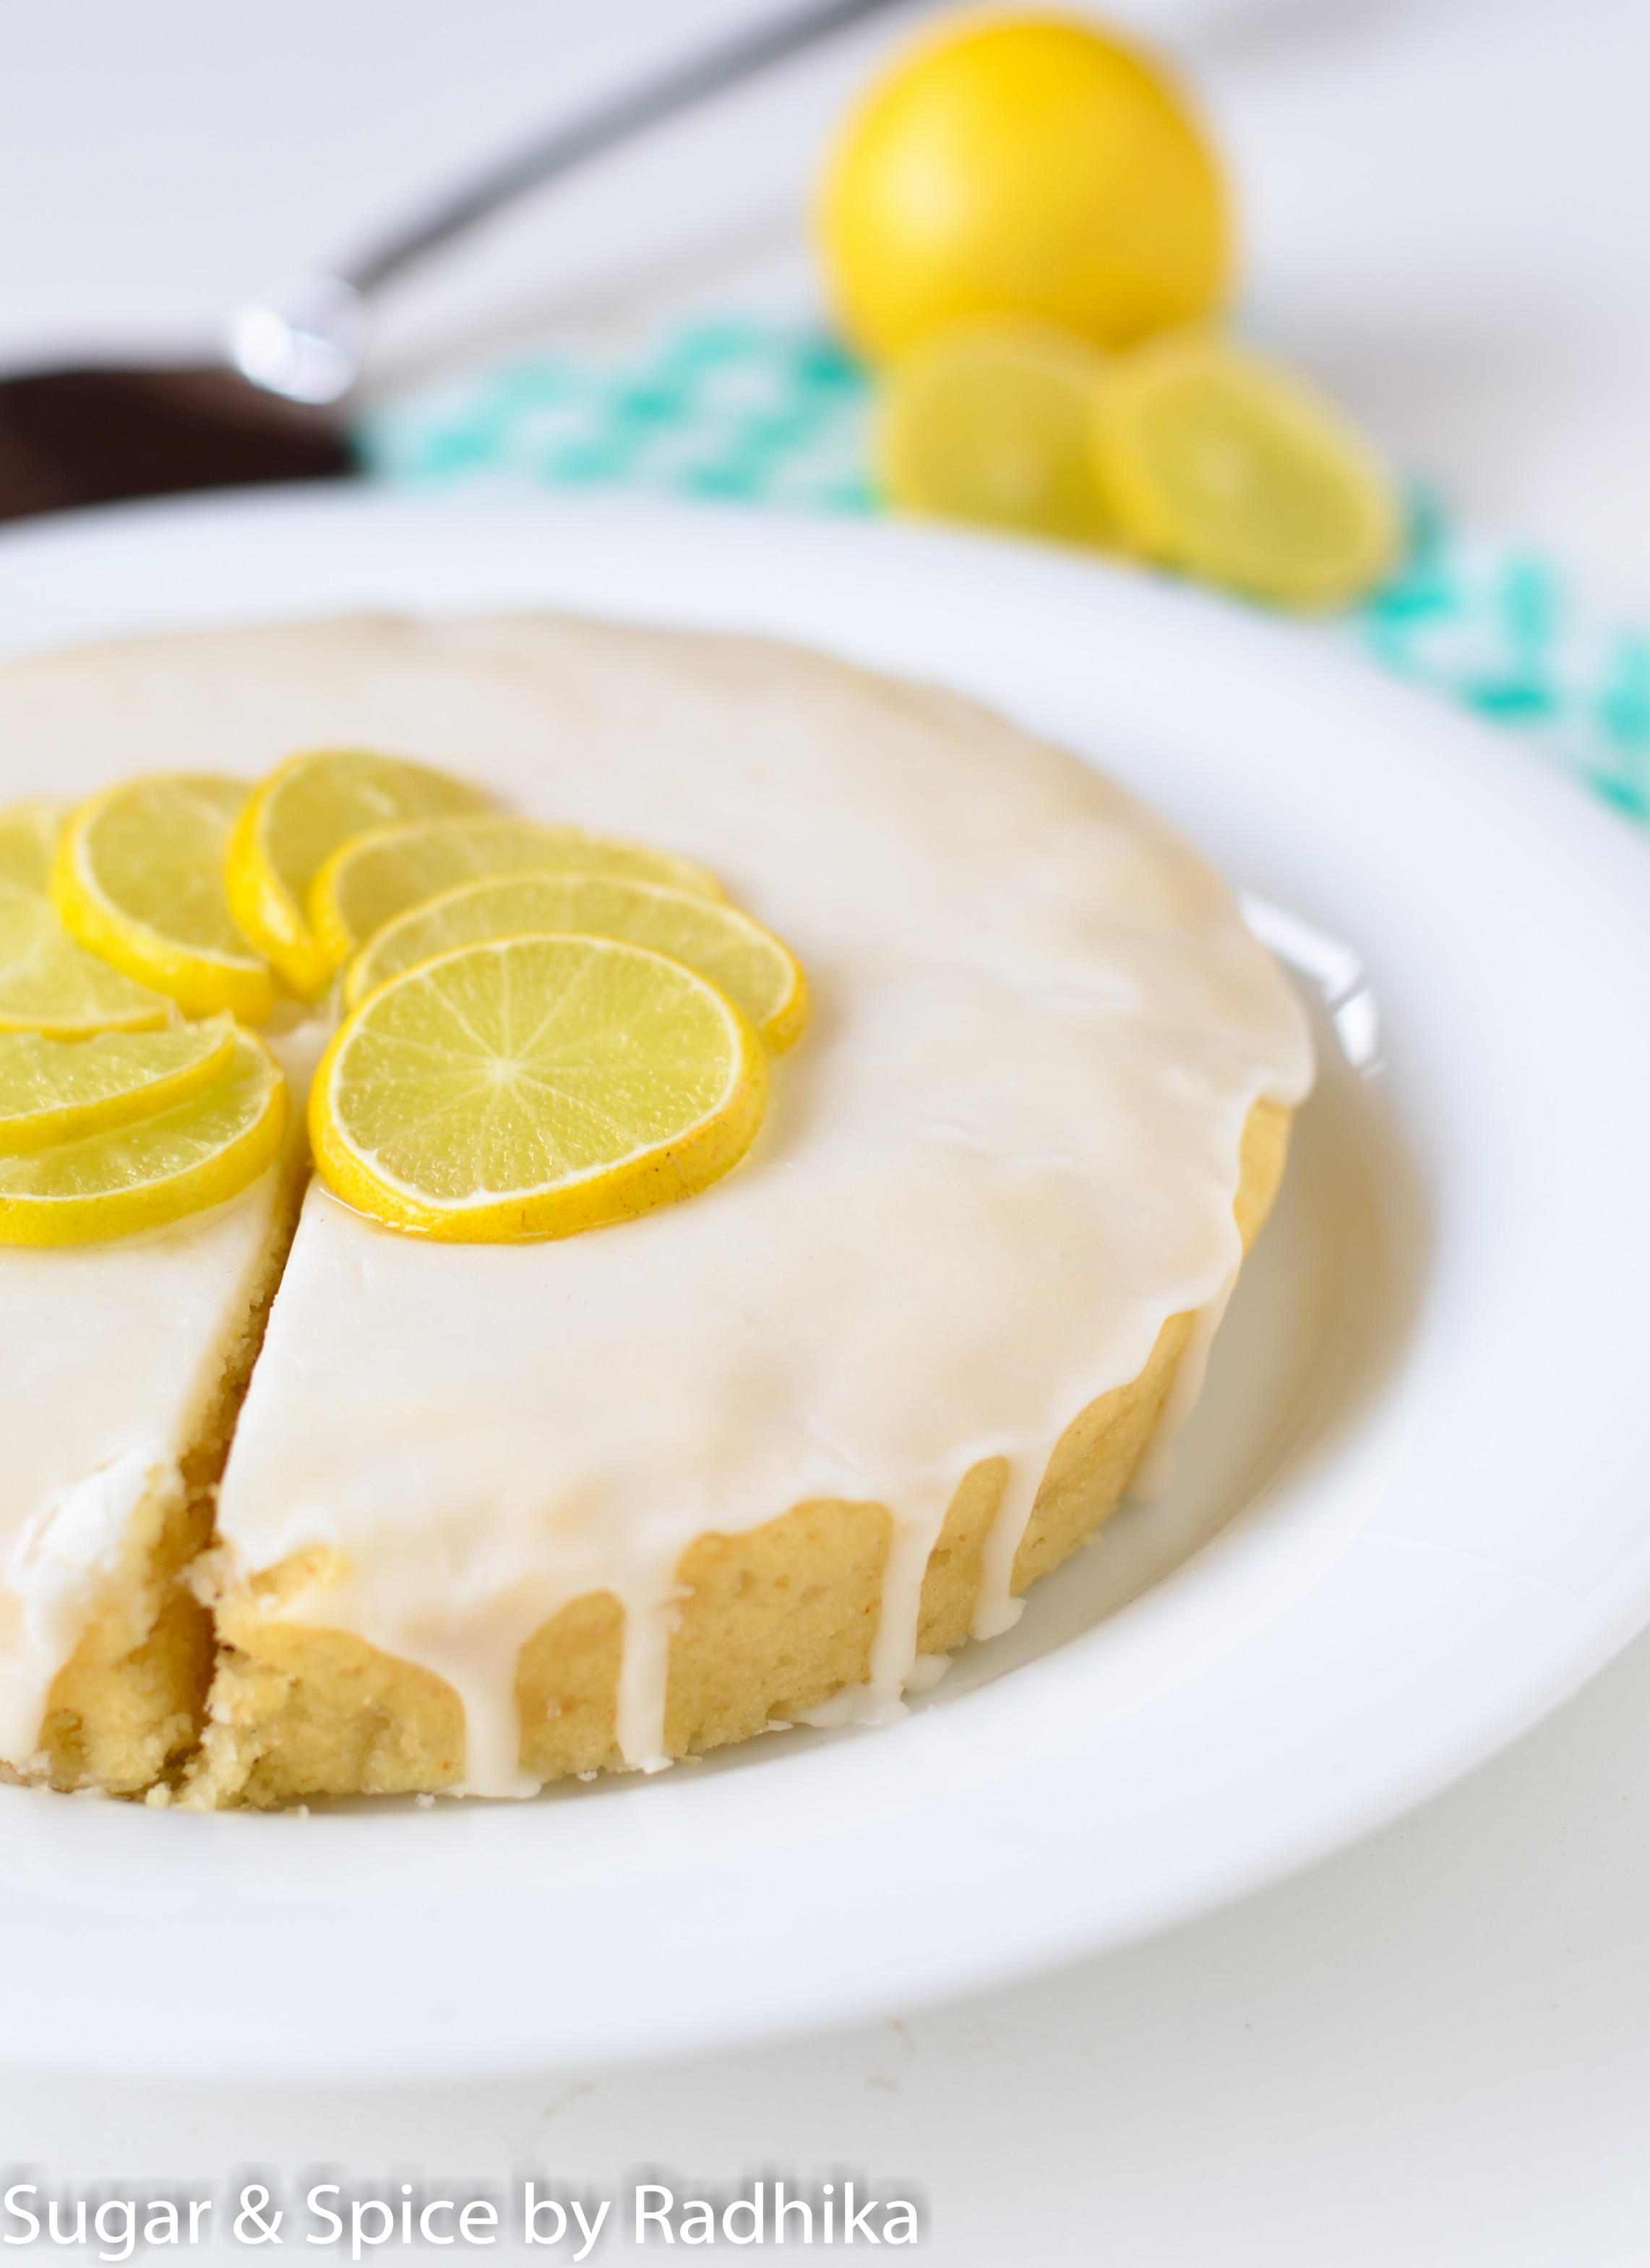 Eggless Lemon Drizzle Cake Recipe